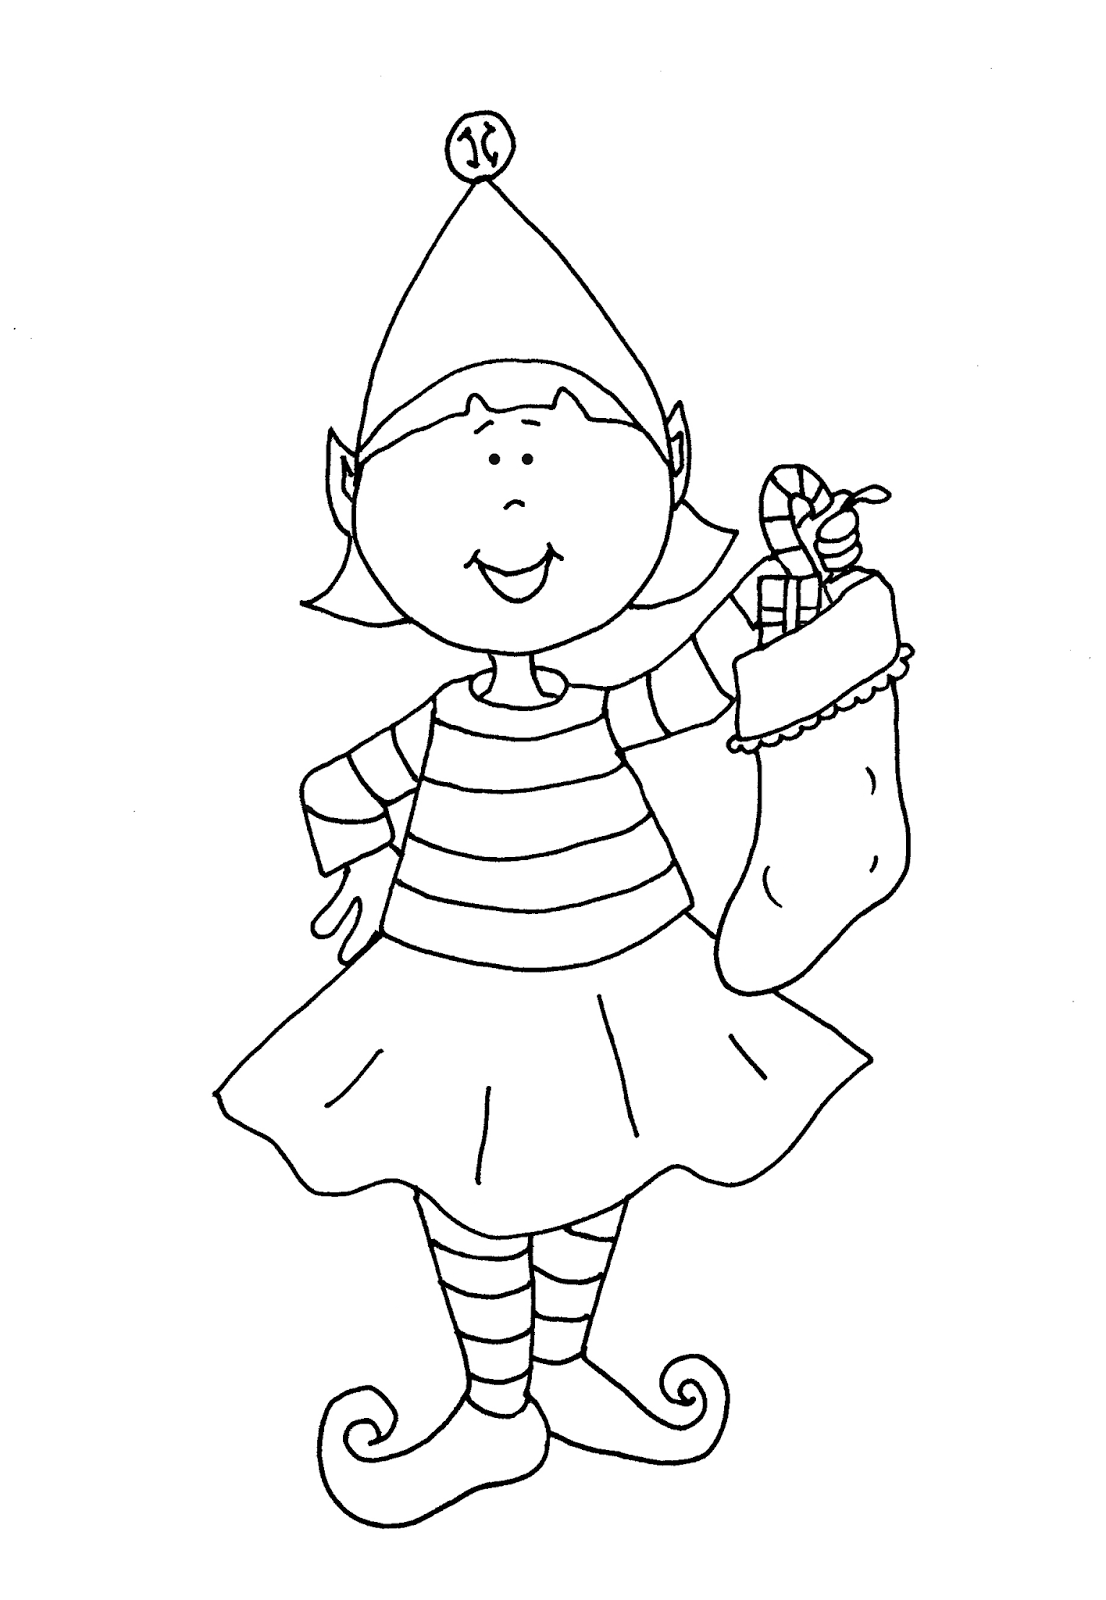 Free Christmas Elf Coloring Pages For Kids Drawing With Crayons